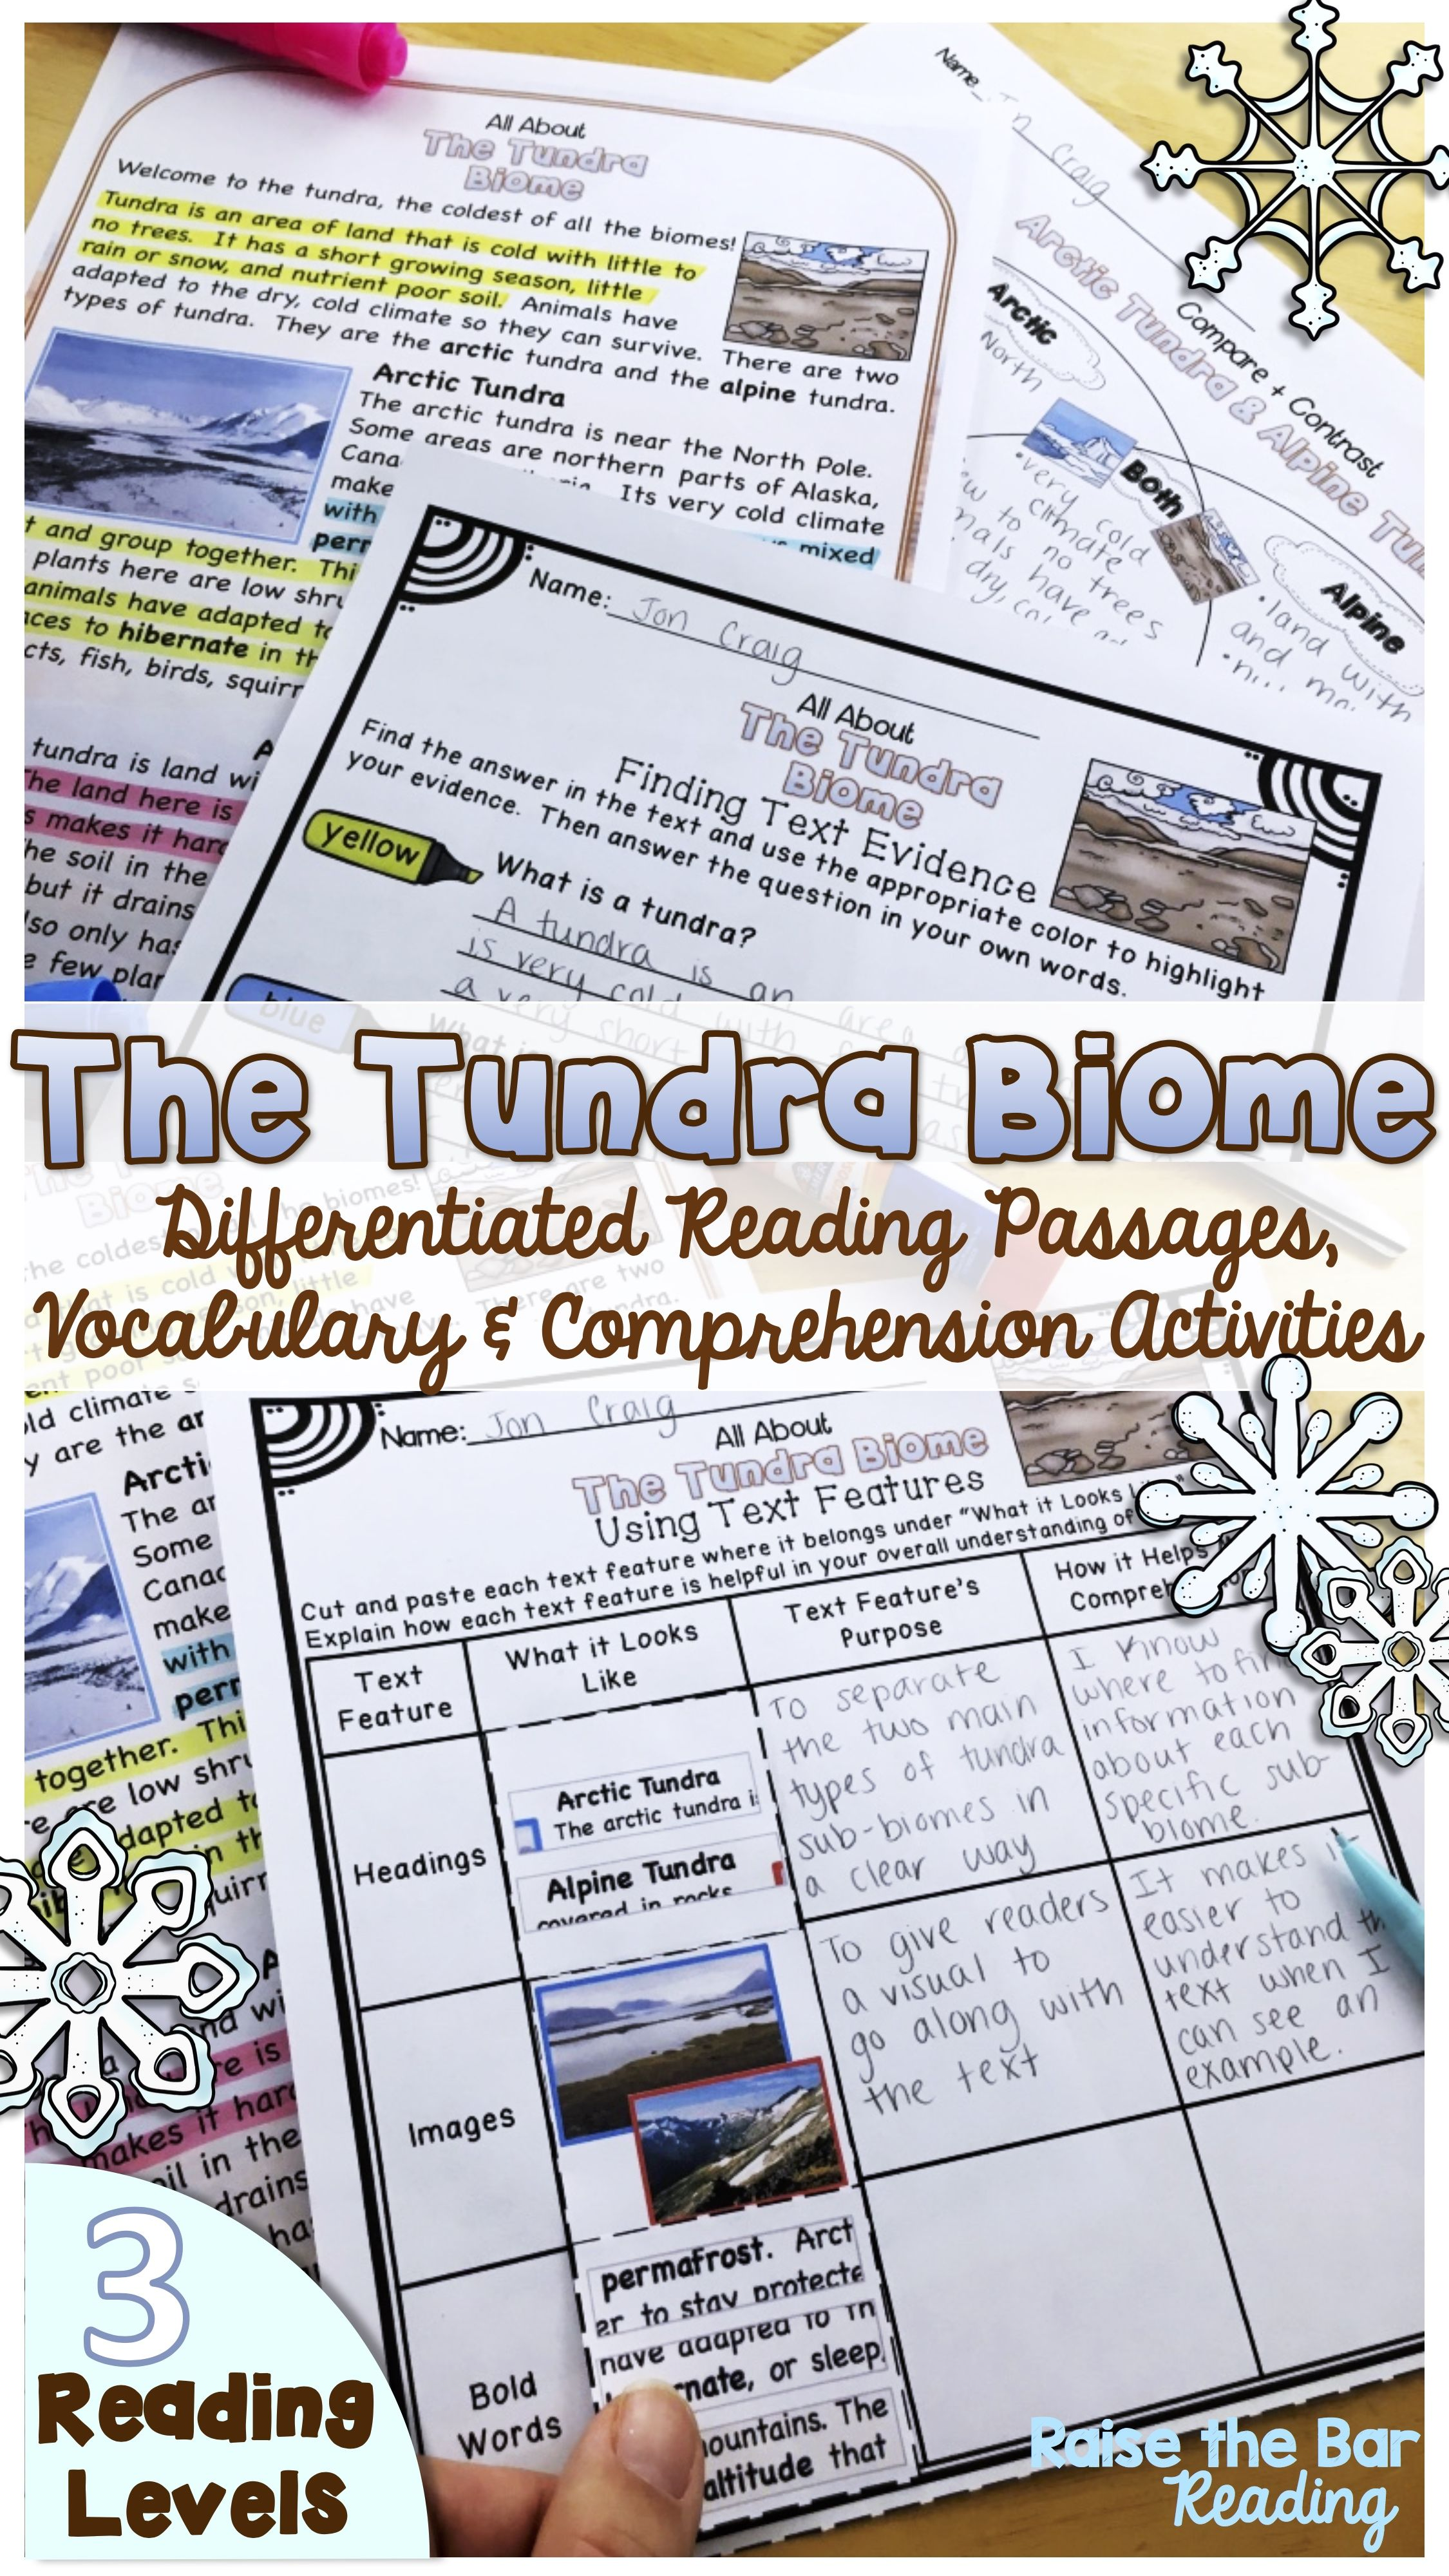 Make Studying Biomes Engaging For Your Students With These Differentiated Tundra Reading Passages Vocabulary Reading Passages Biomes Middle School Science Lab [ 4000 x 2250 Pixel ]